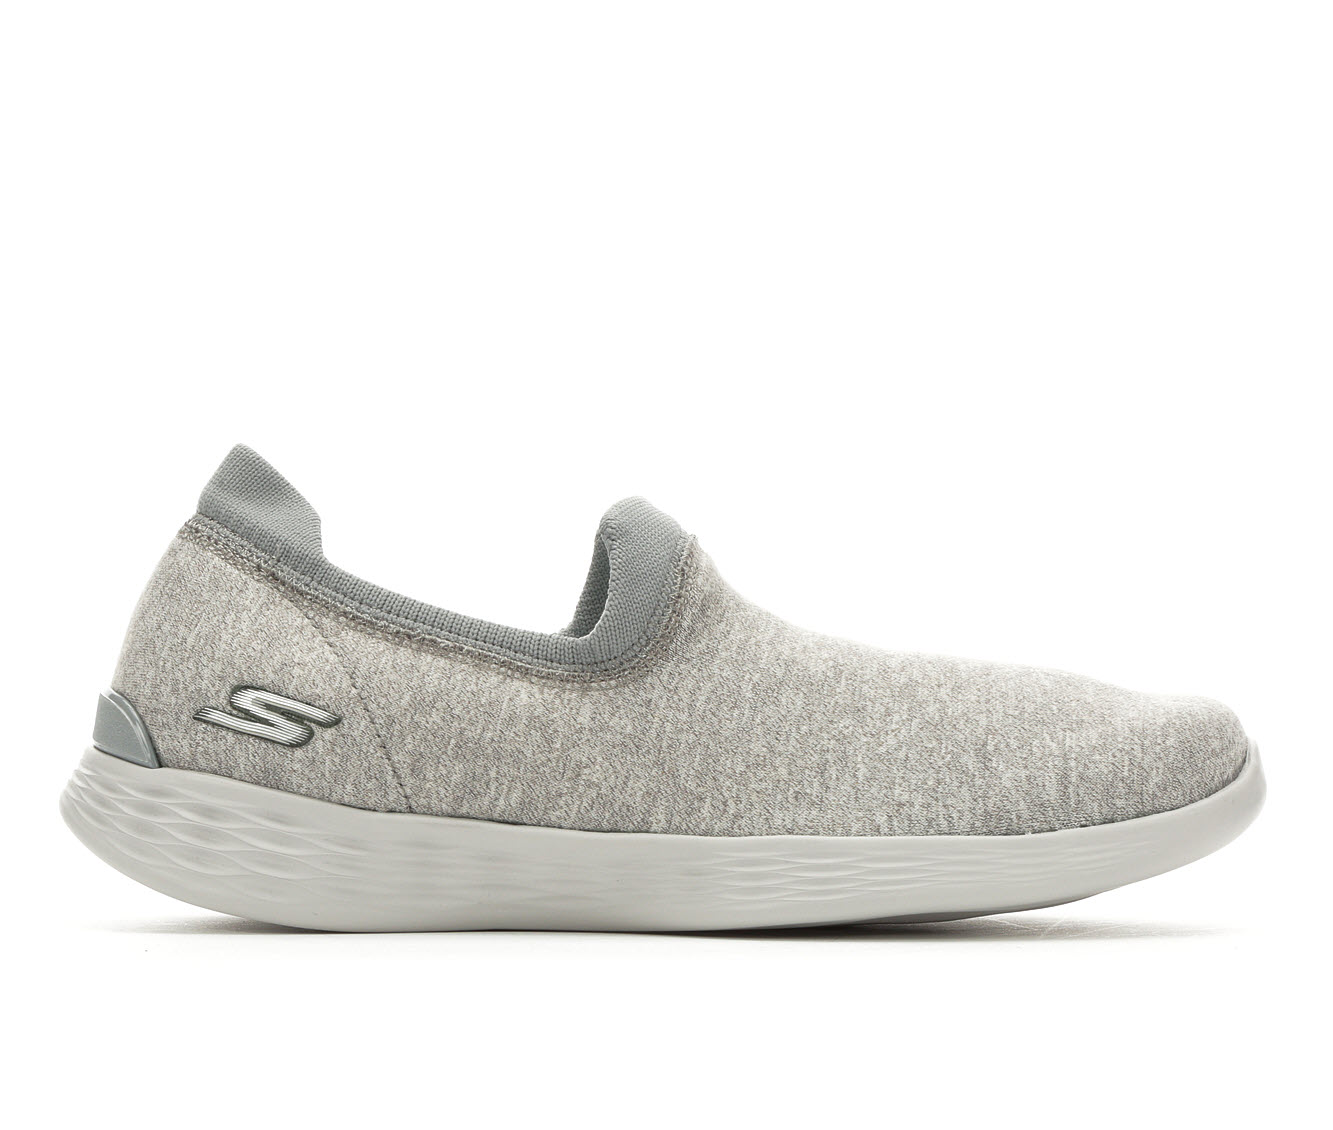 Skechers Go You Perfection 15821 Women's Shoe (Gray Canvas)